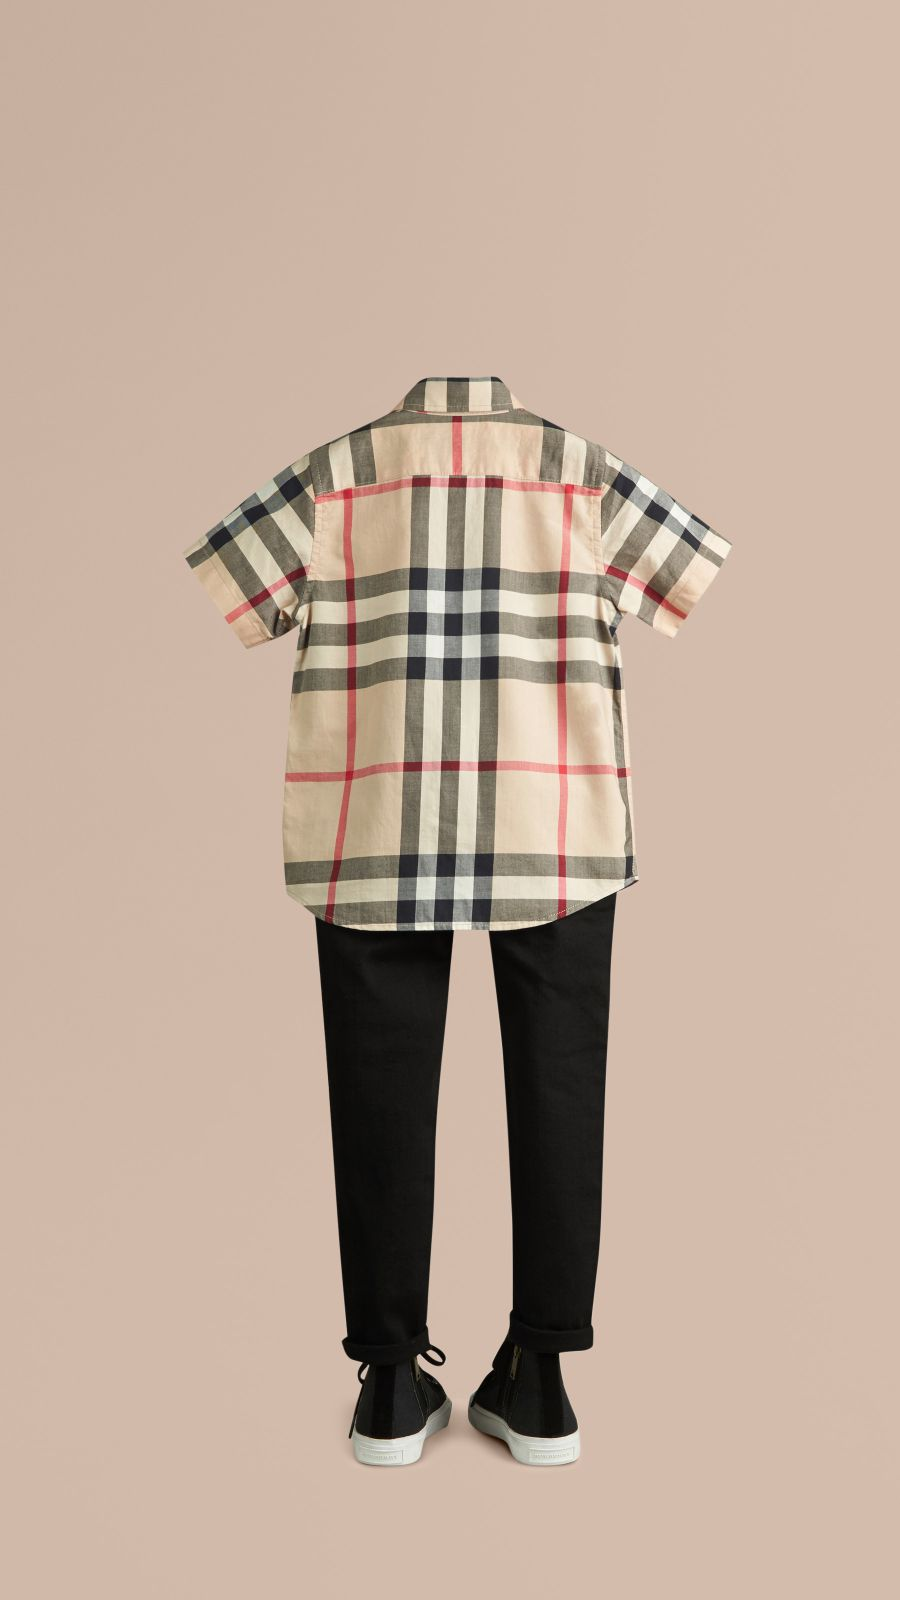 New classic Short-sleeve Check Cotton Twill Shirt New Classic - Image 3